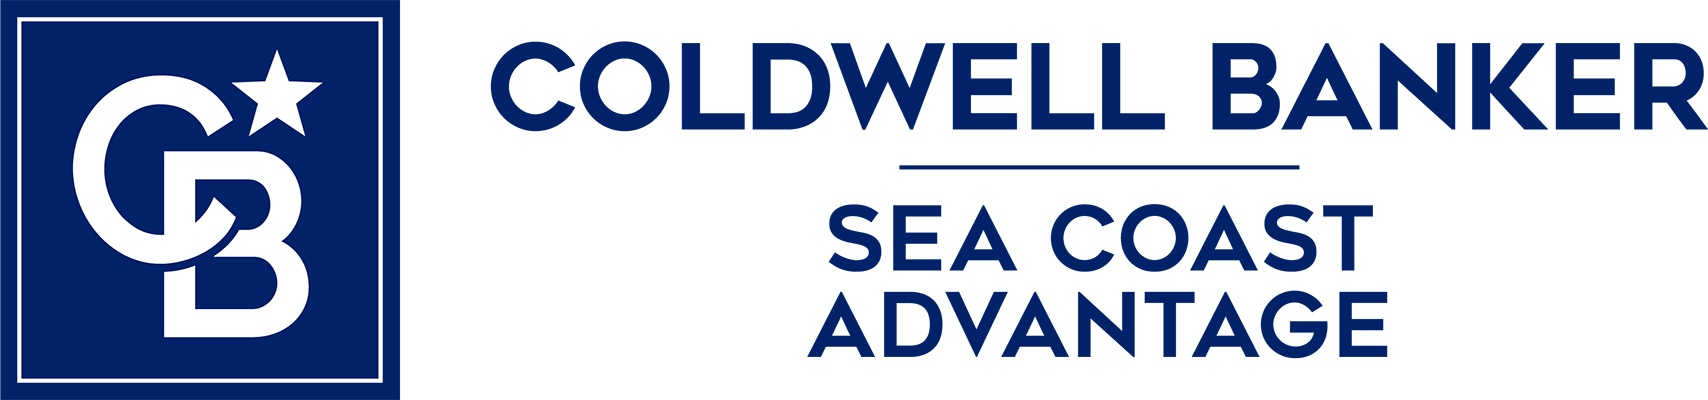 Rob Warwick - Coldwell Banker Sea Coast Advantage Realty